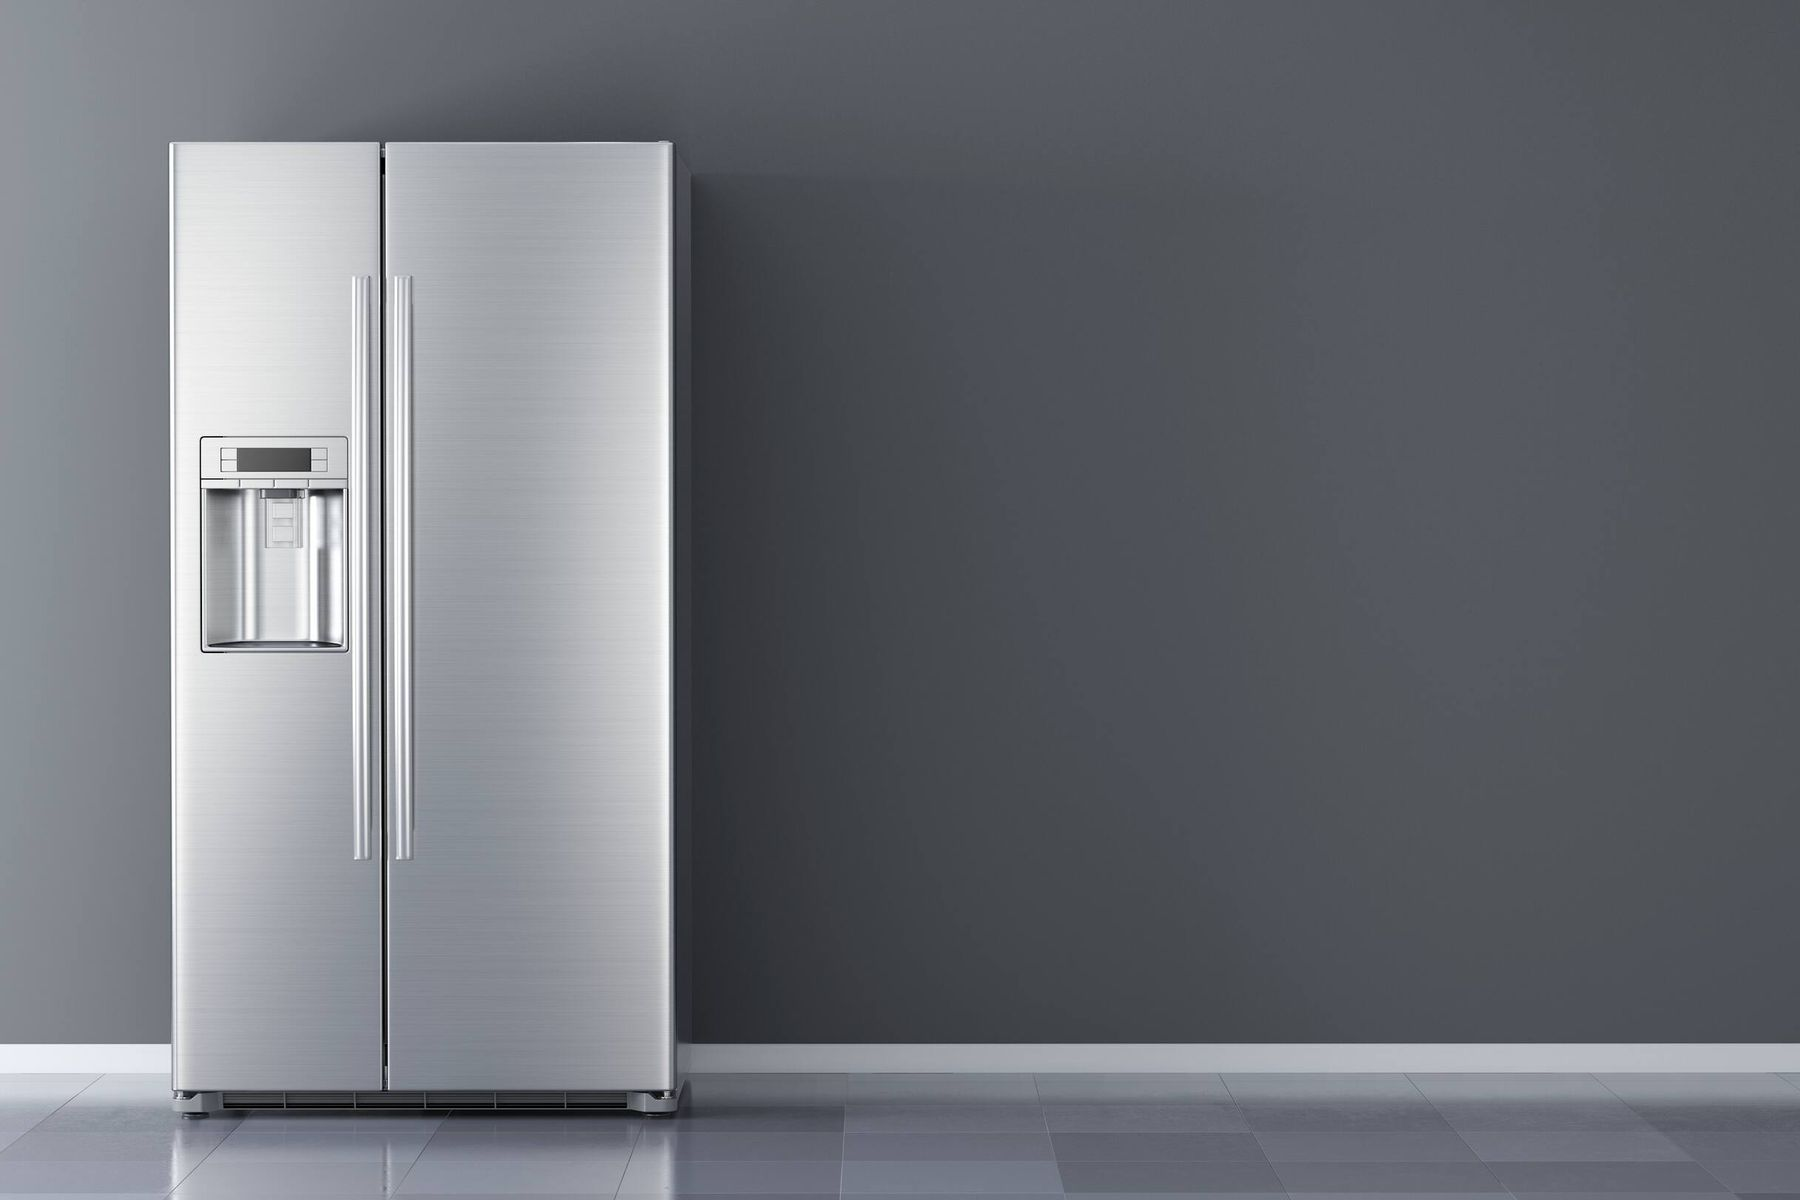 How to Clean Your Refrigerator Exteriors | Get Set Clean